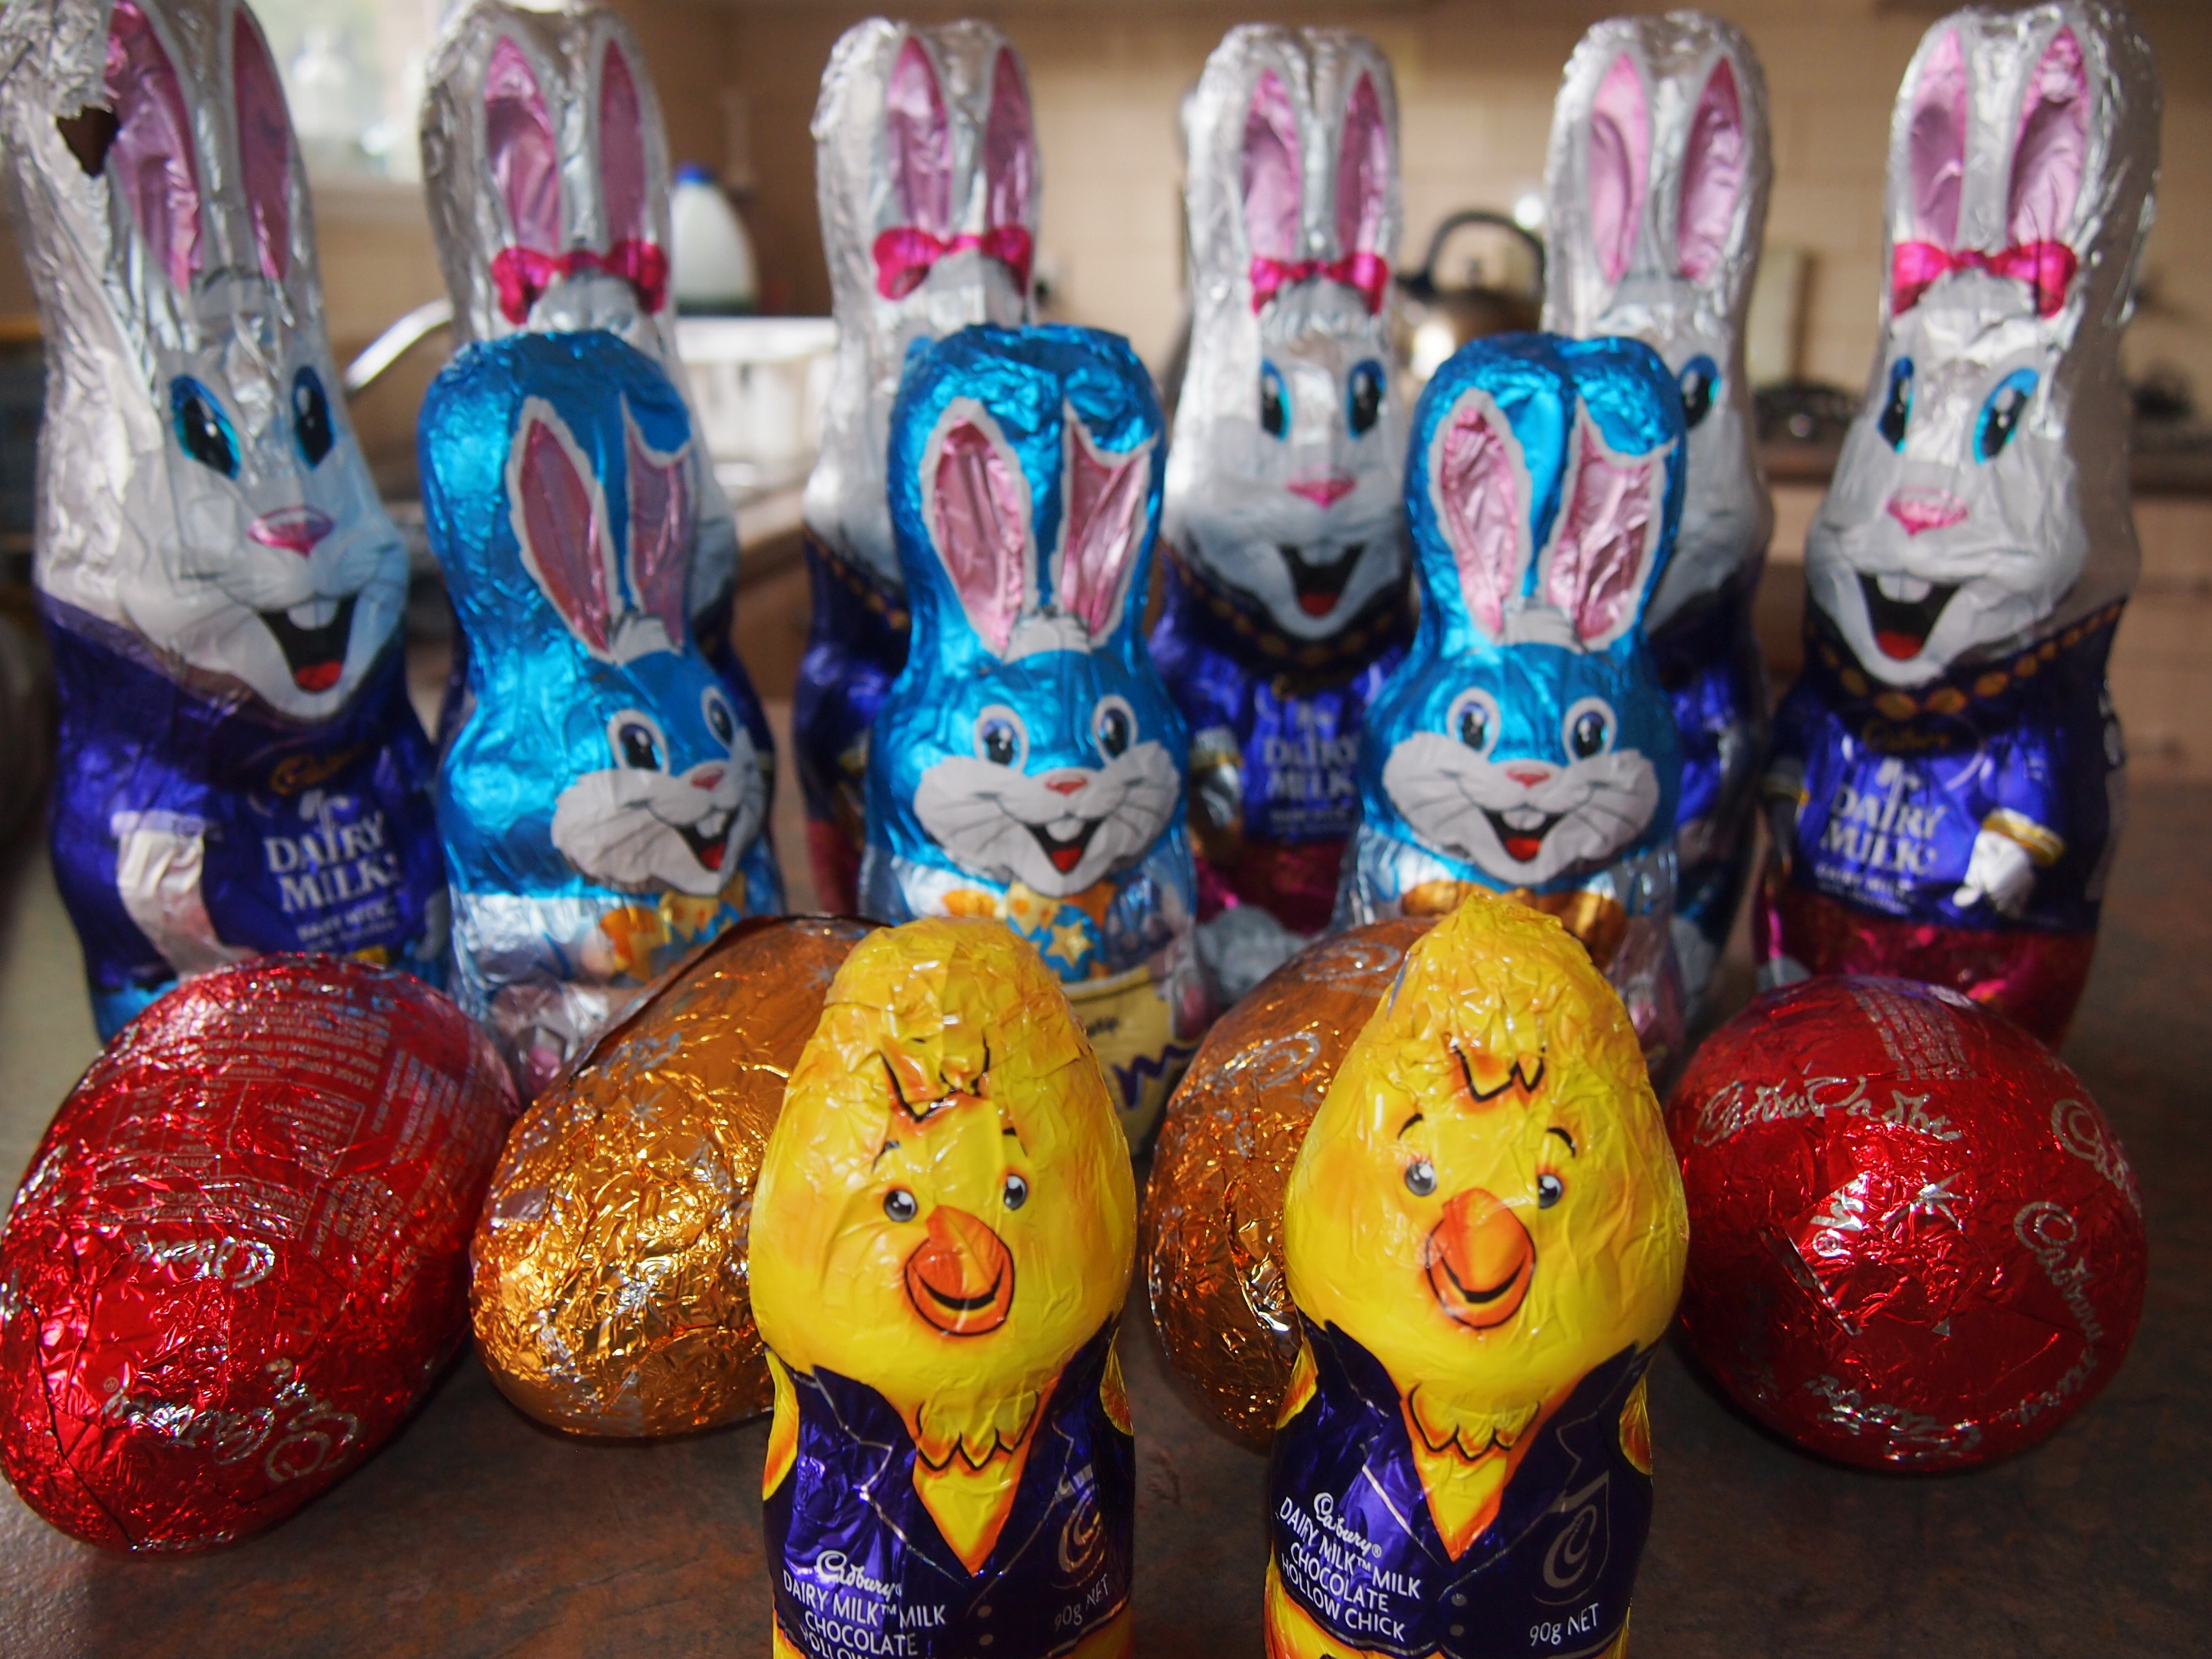 Where to find the best easter eggs in melbourne melbourne large image negle Gallery